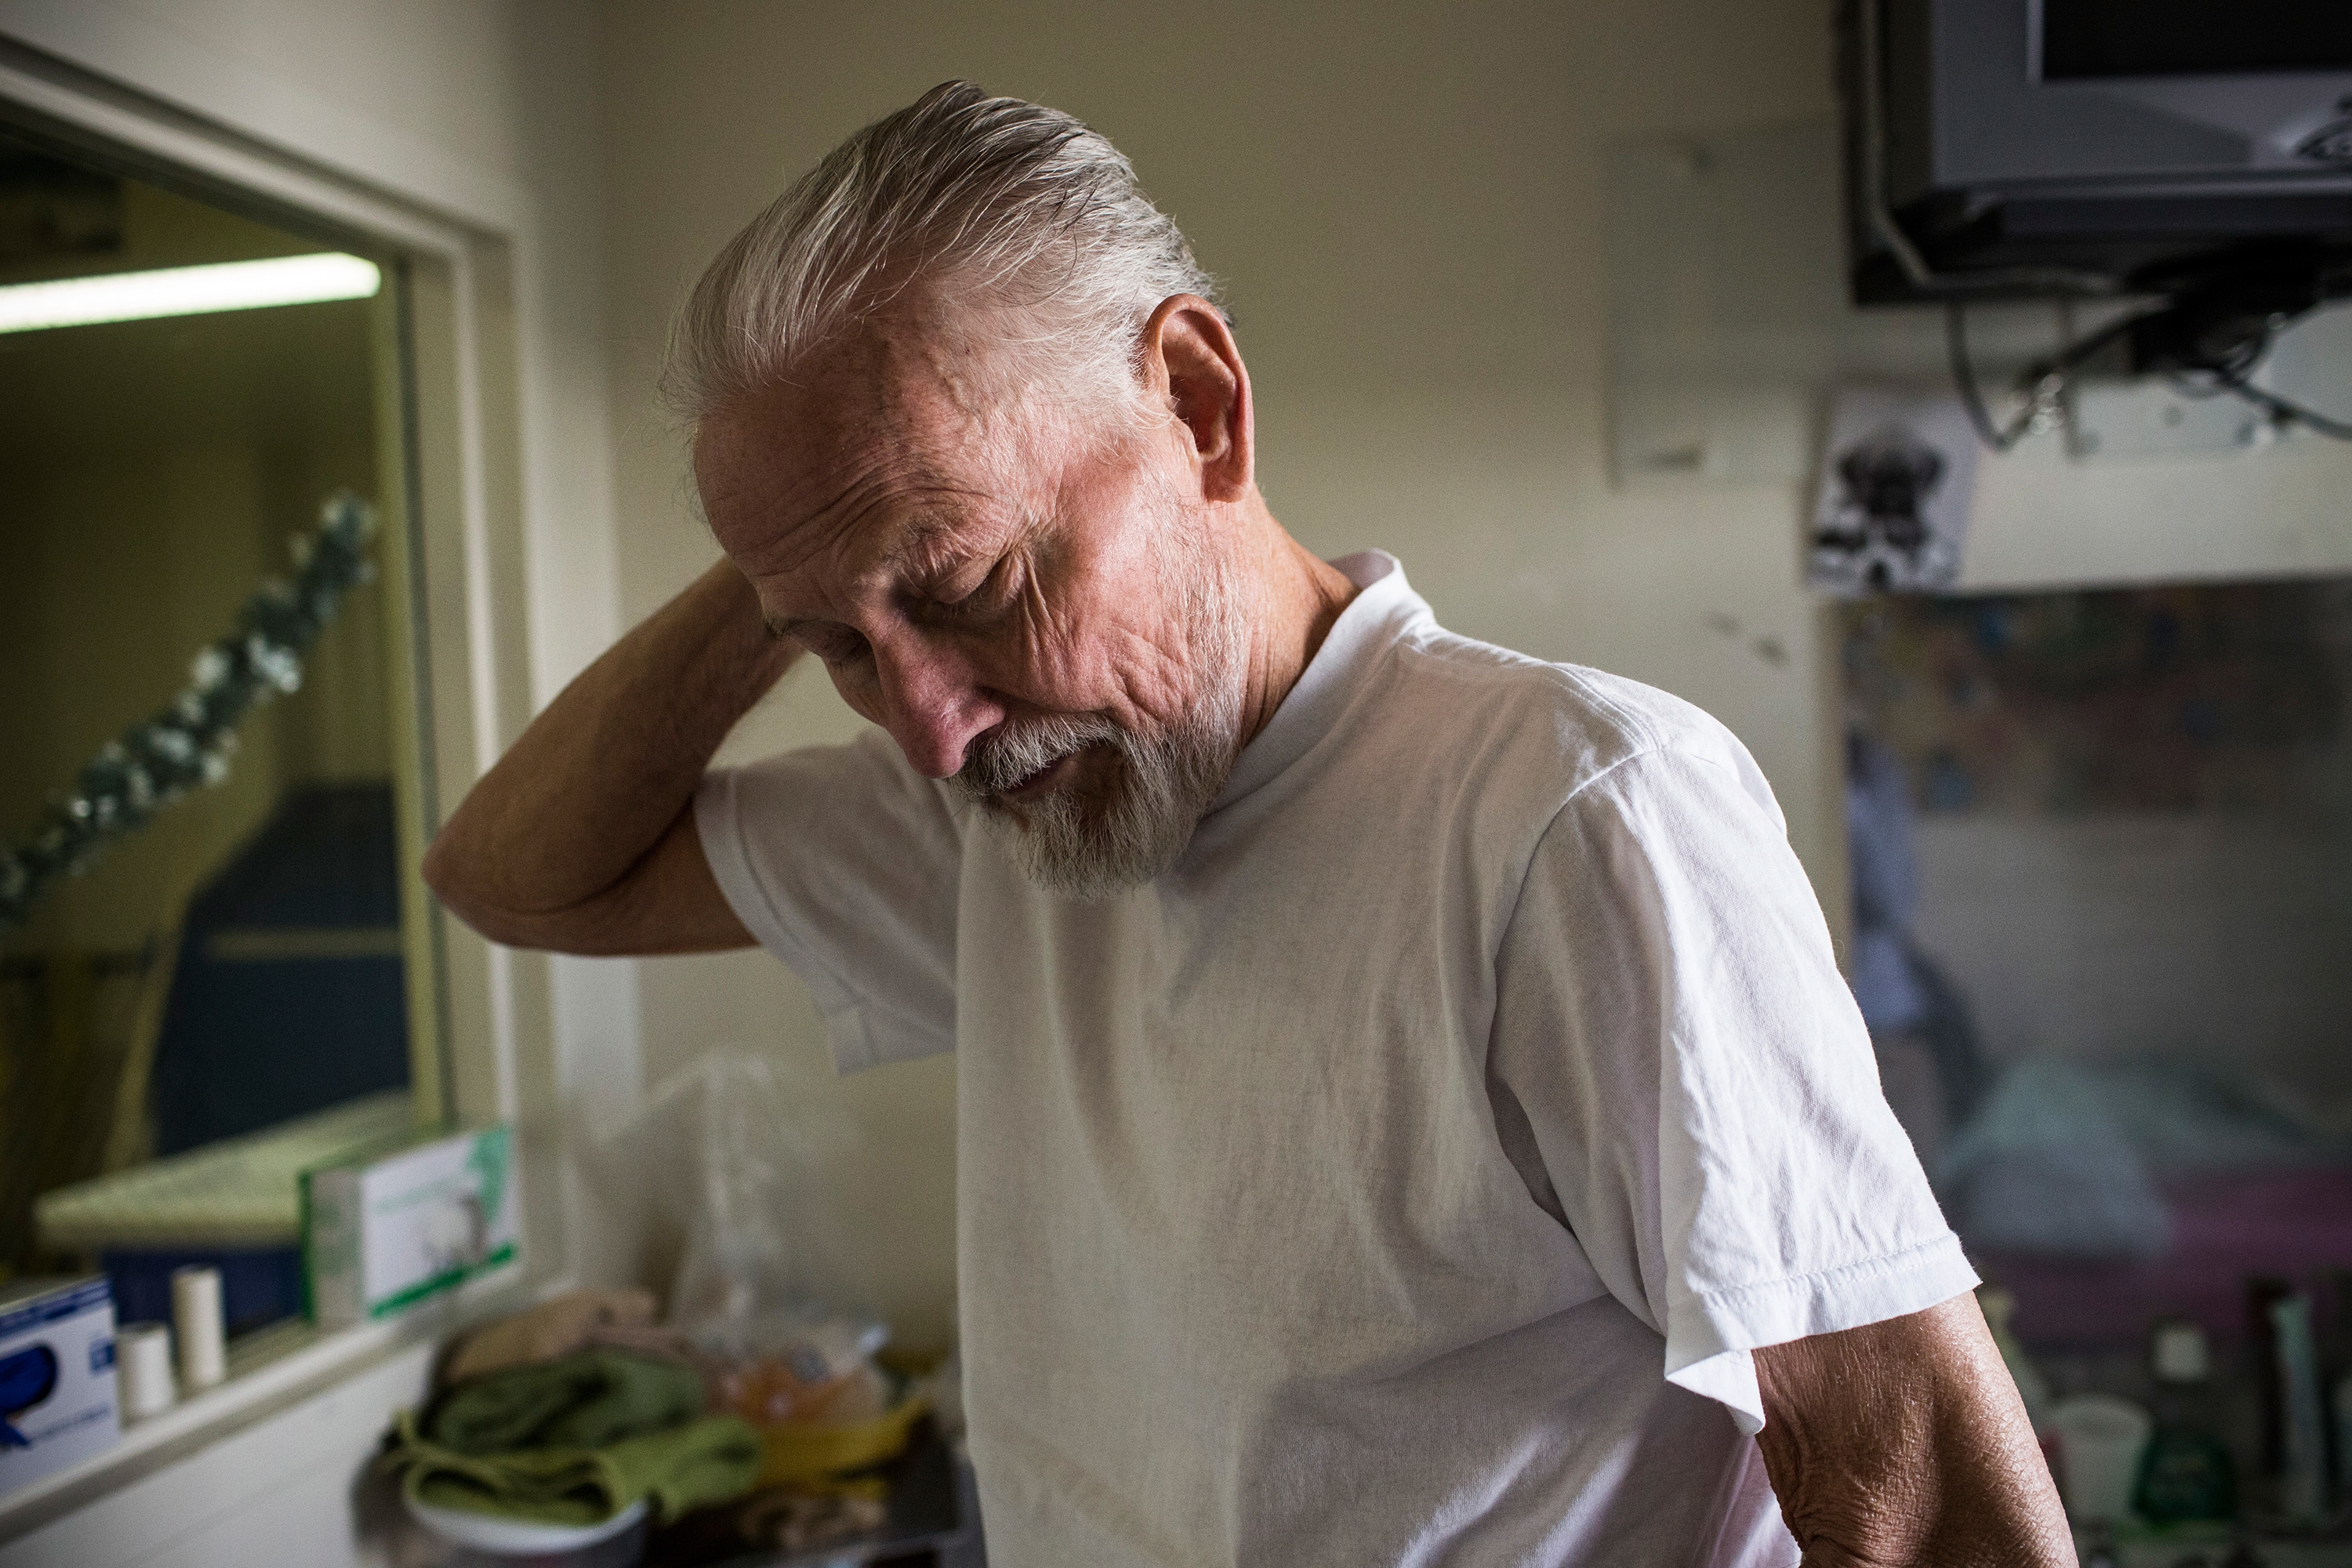 A 73-year-old hospice care patient diagnosed with terminal colon cancer, brushes his hair in the hospice care wing of California Medical Facility (CMF) on December 17, 2013 in Vacaville, California.